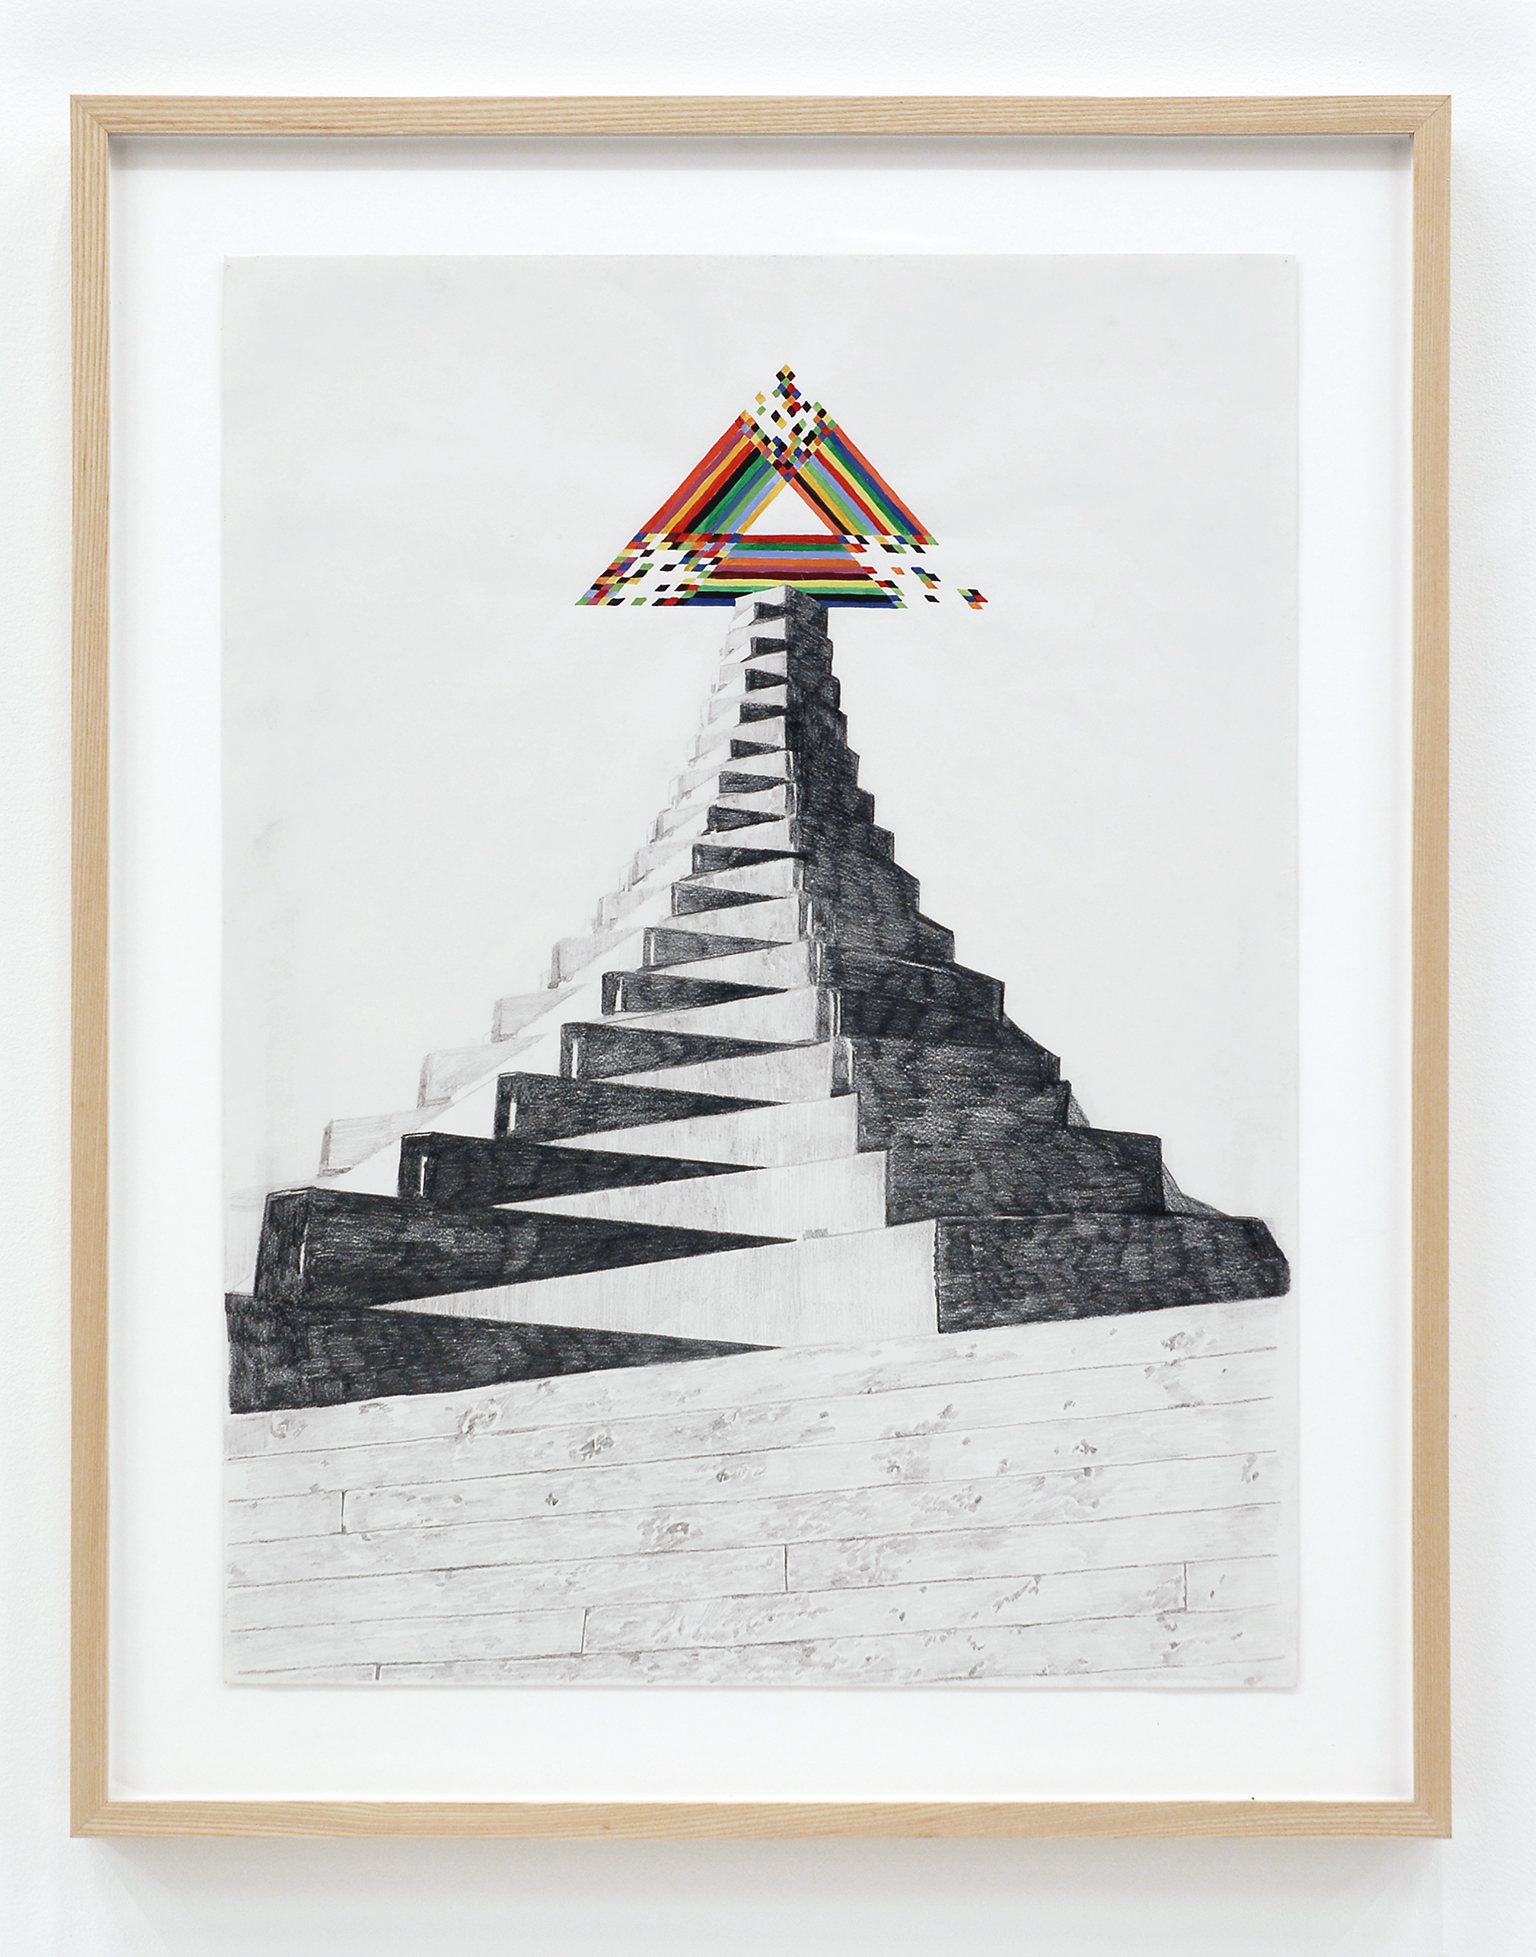 Alex Morrison, The Poetics of Grey (No. 6), 2007, graphite and coloured pencil on paper, 29 x 23 in. (73 x 58 cm) by